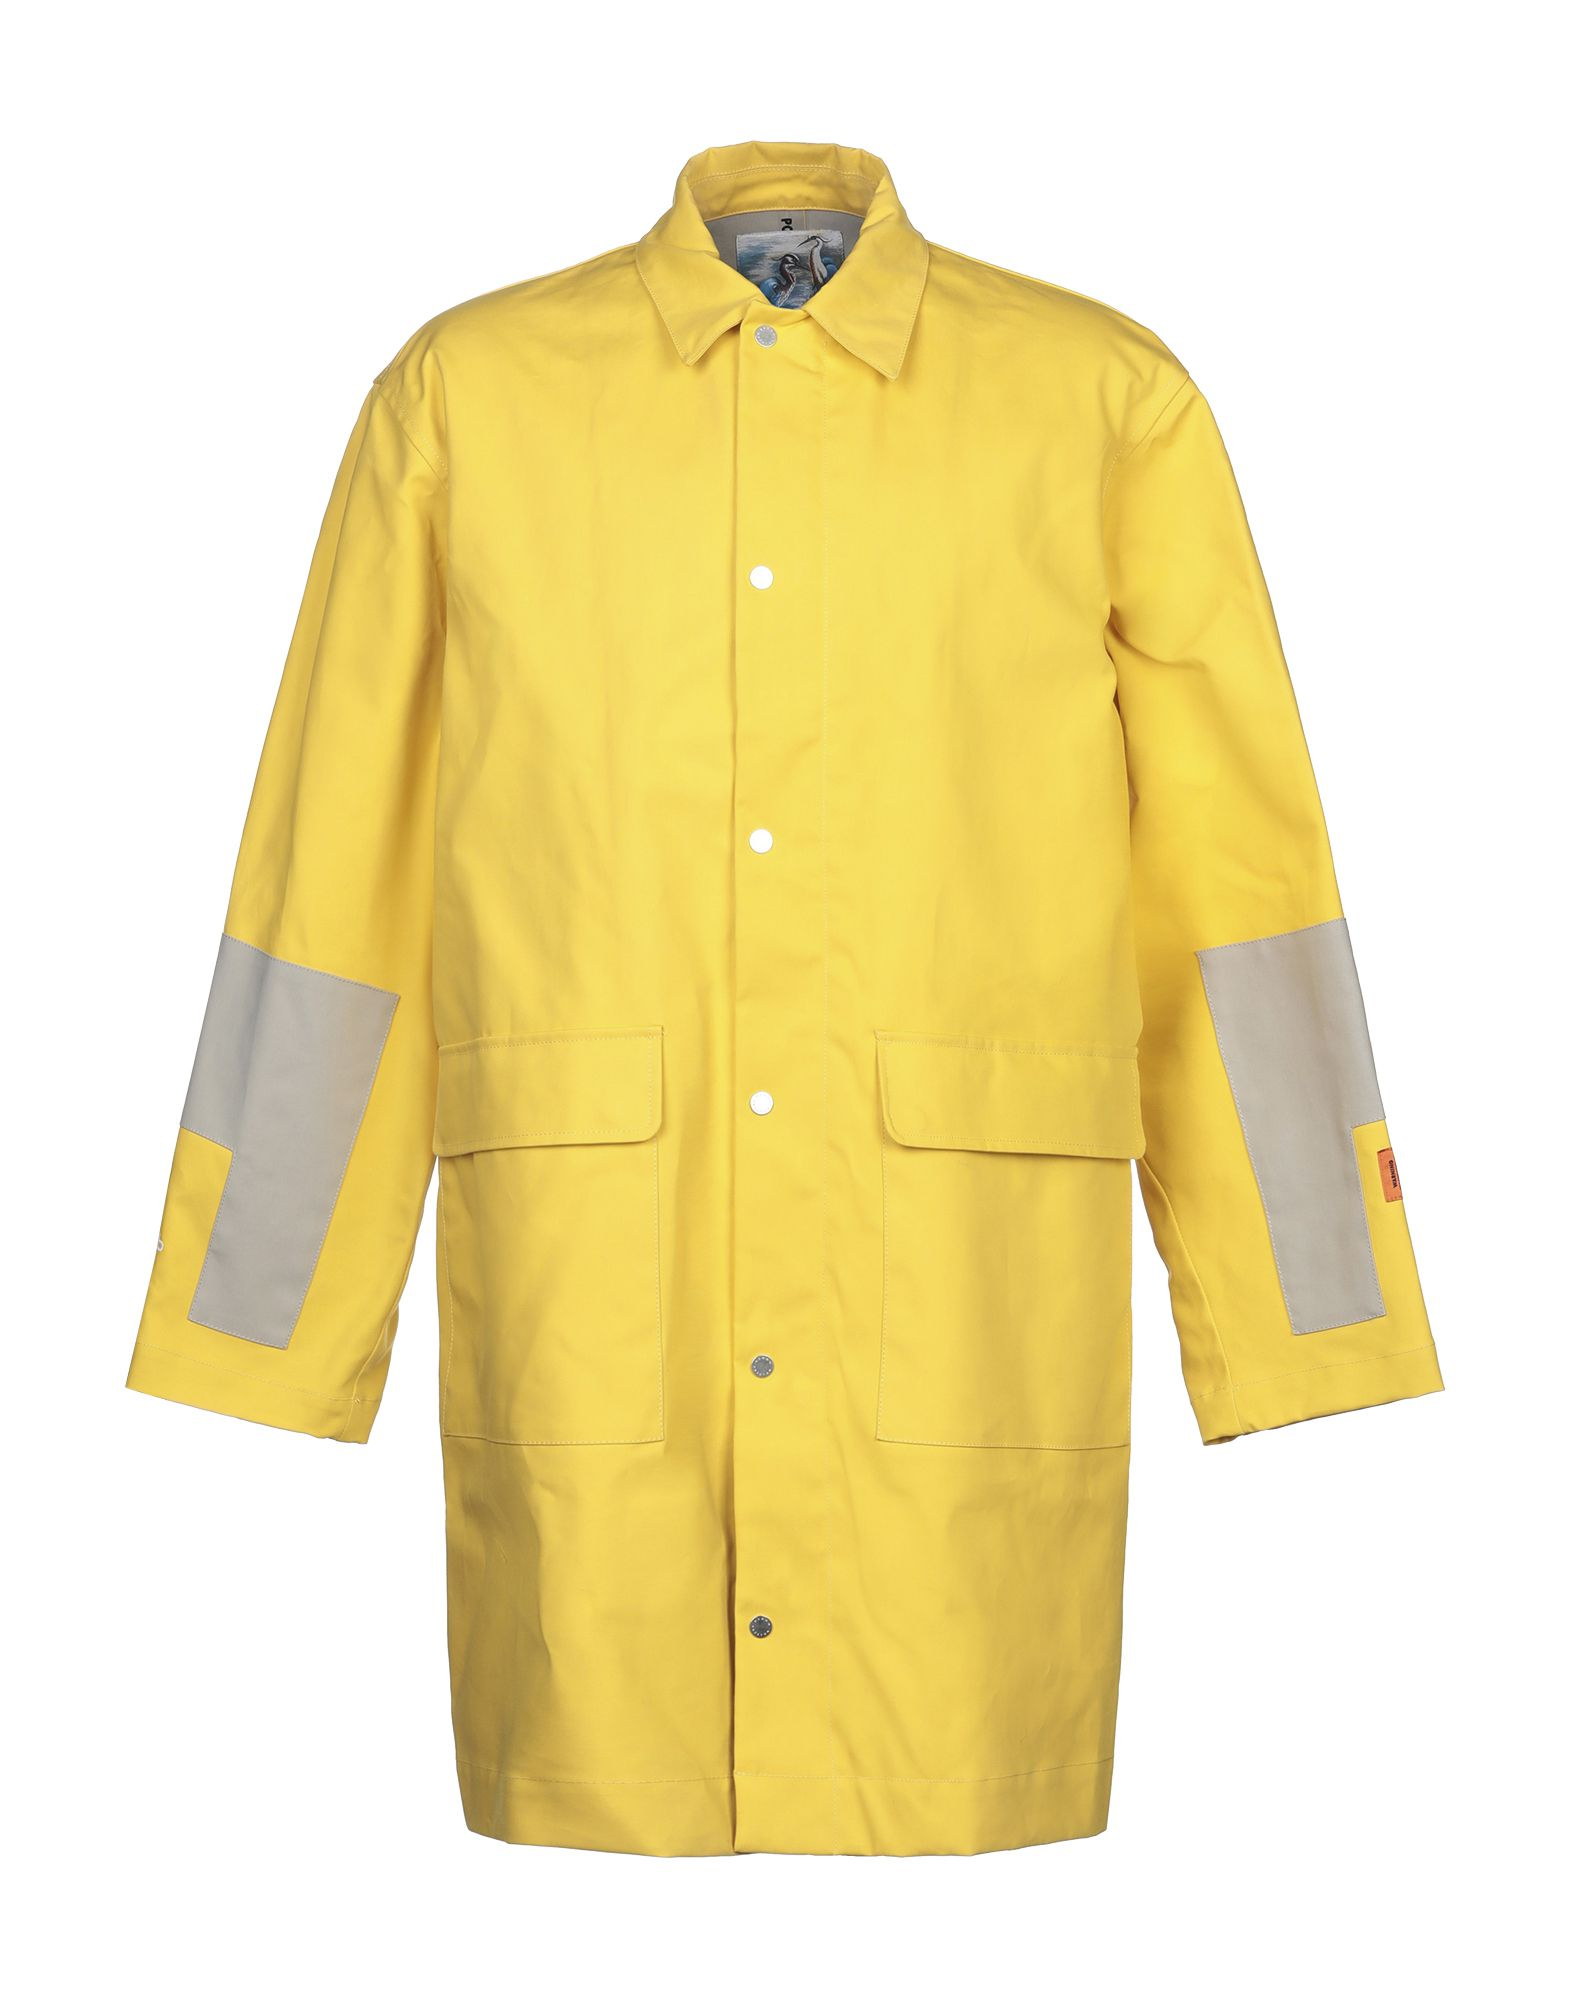 HERON PRESTON Overcoats. techno fabric, logo, solid color, single-breasted, snap-buttons, zip, classic neckline, multipockets, long sleeves, unlined. 100% Cotton